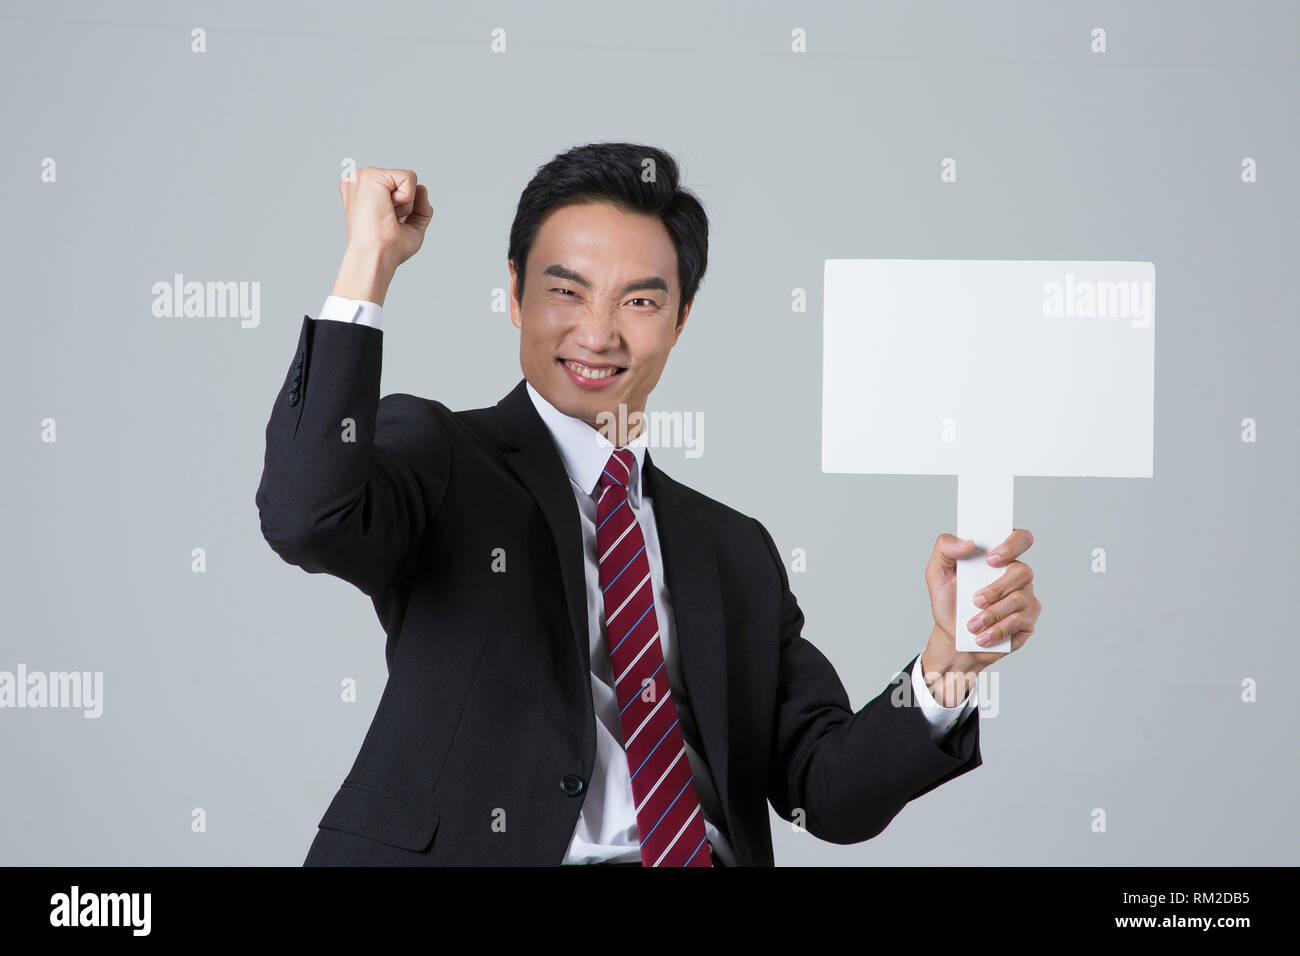 Young businessman concept photo. 073 - Stock Image